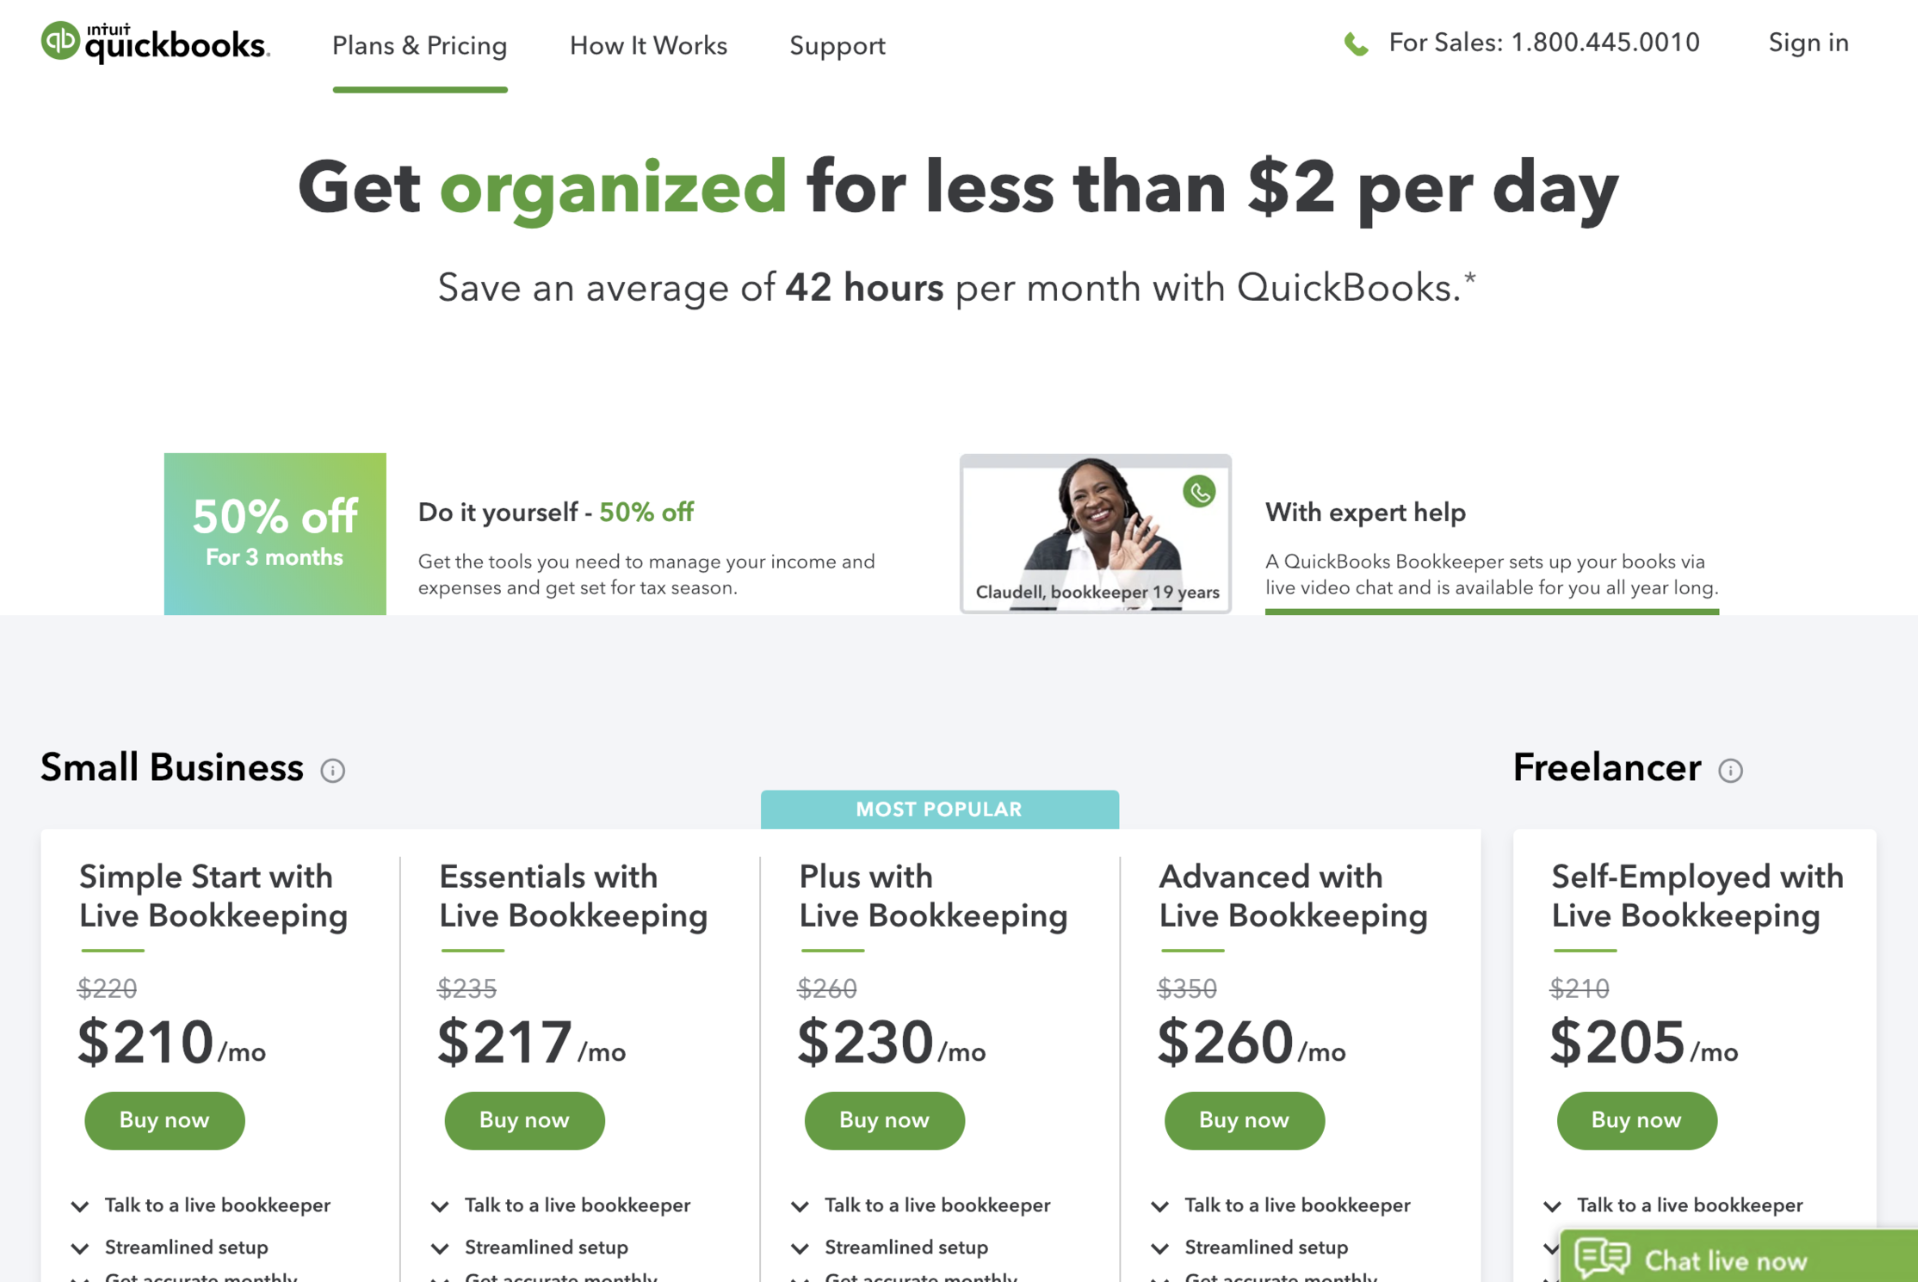 QuickBooks Live Bookkeeping Pricing